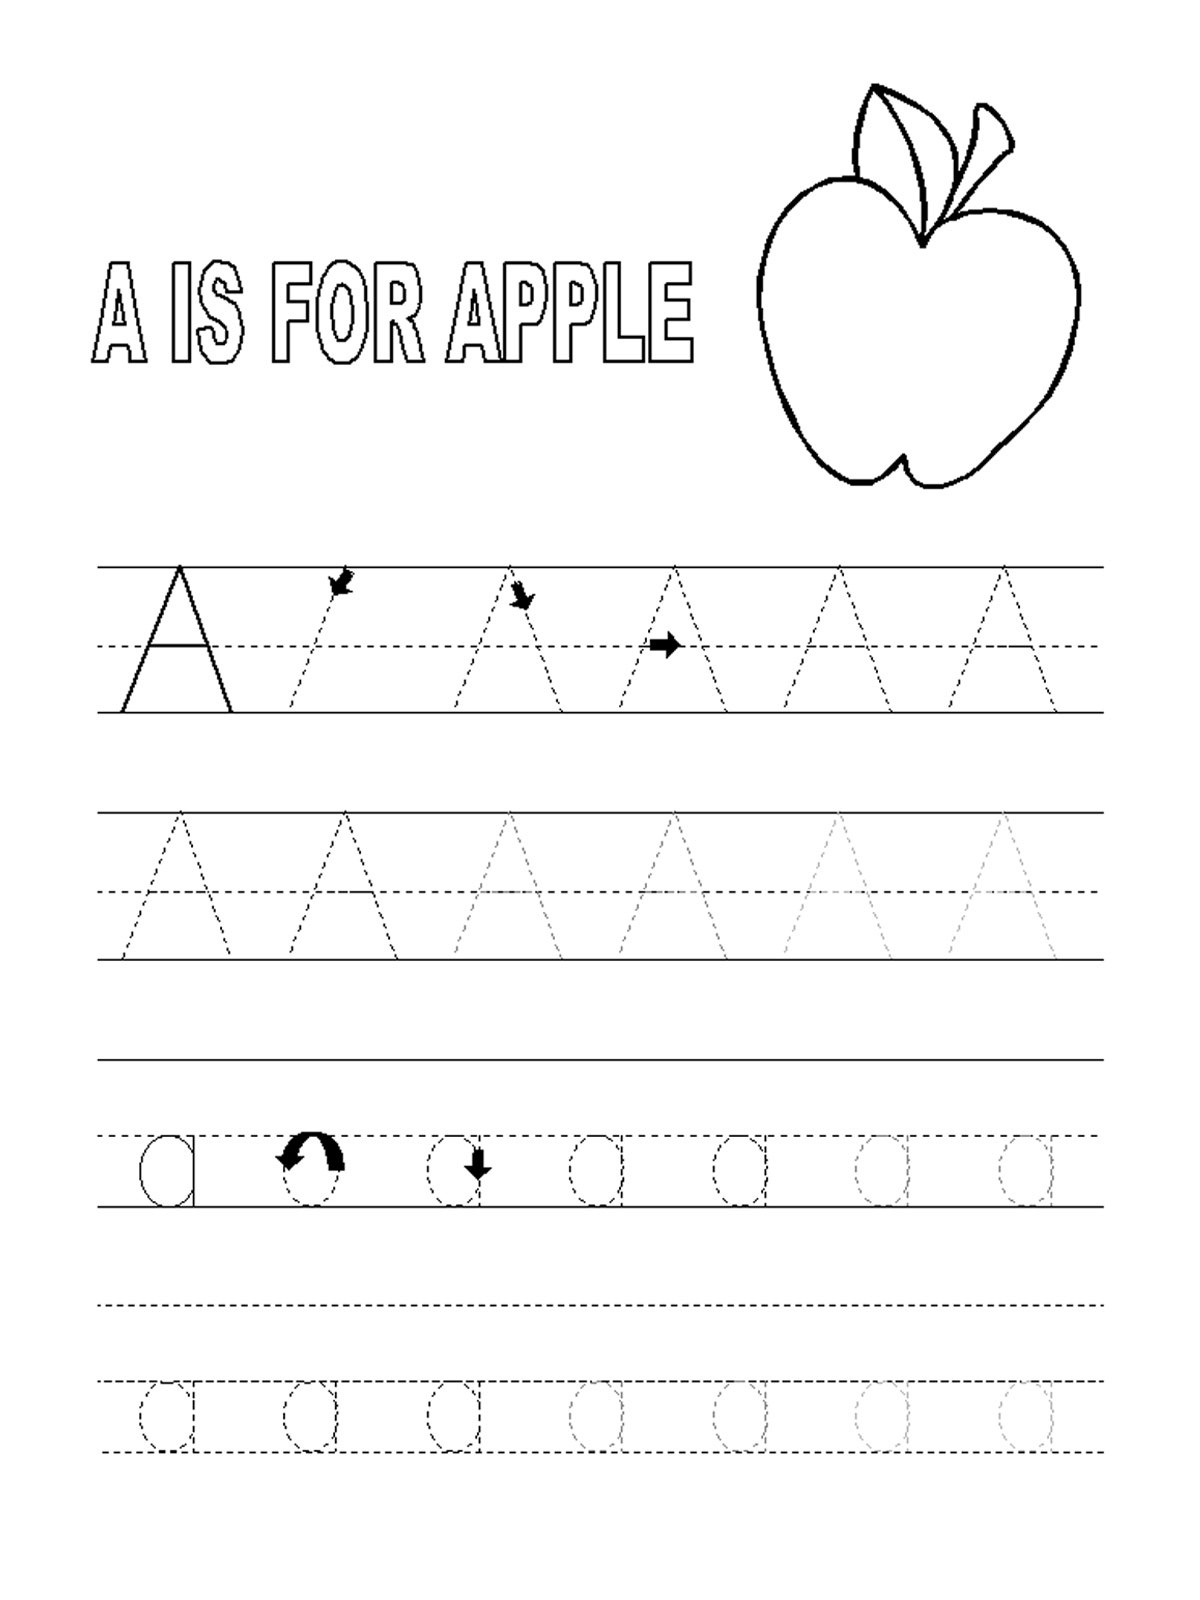 worksheet Alphabet Tracing Pages alphabet tracer pages for kids activity shelter children